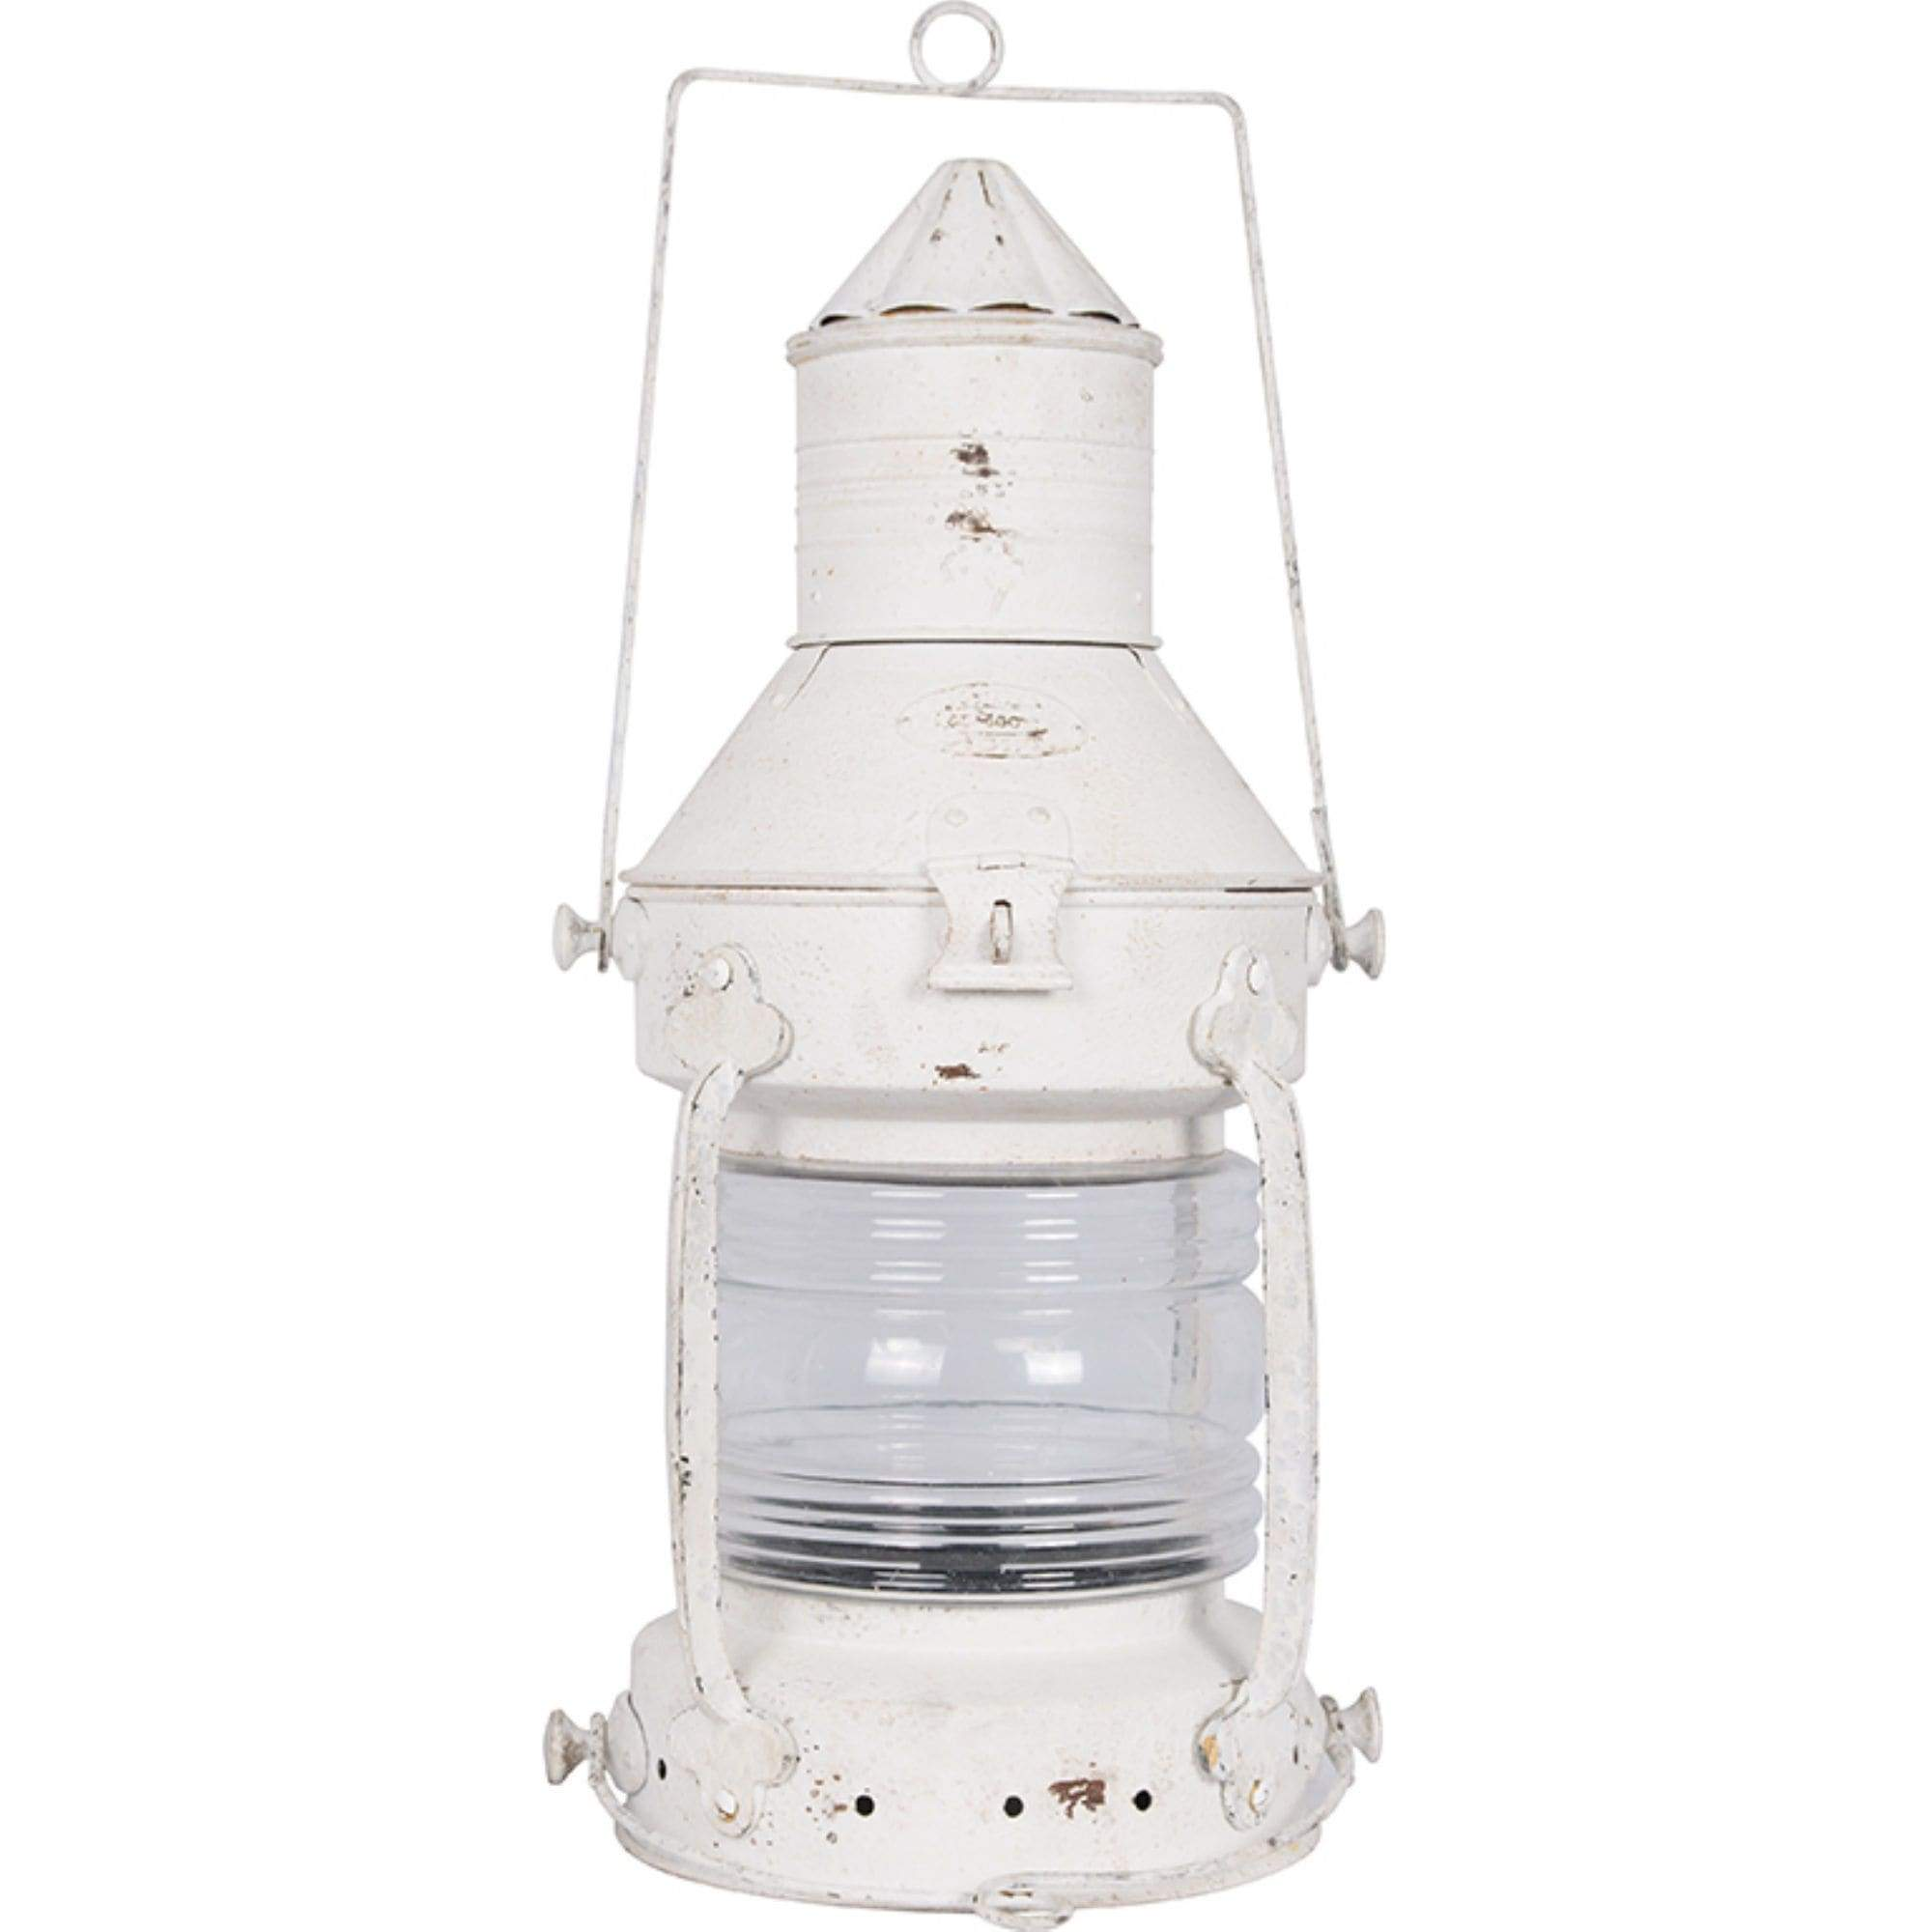 Batela Giftware-Lamp-Large Navigation Lamp